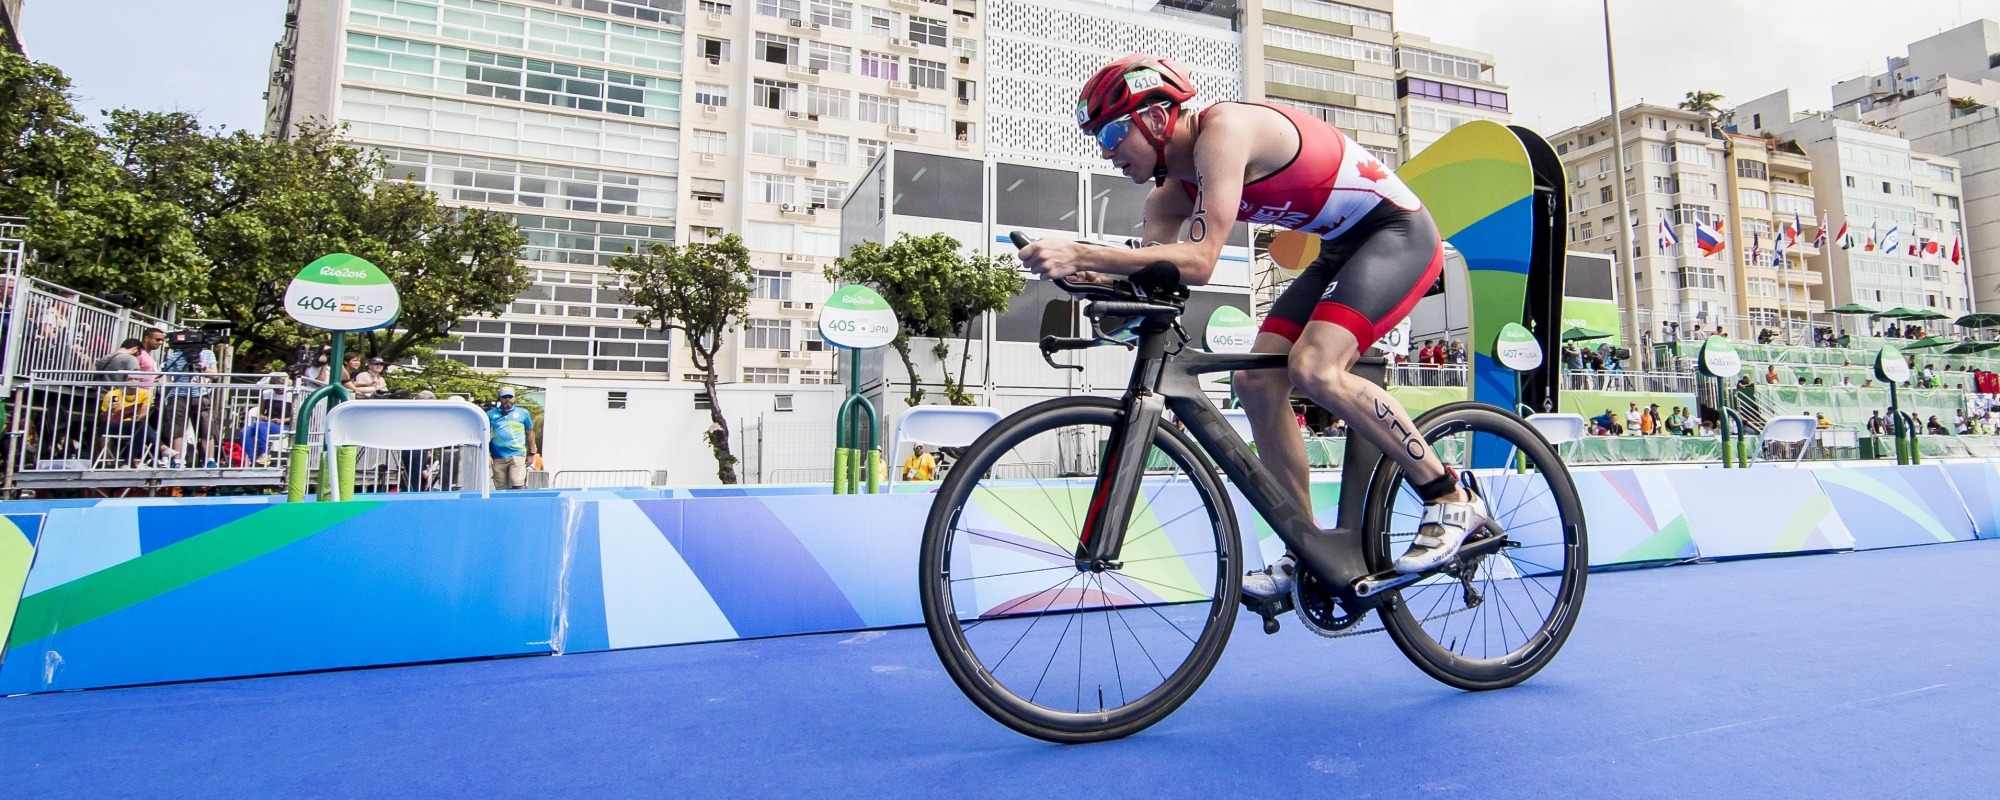 Stefan Daniel completing the race in the Rio triathlon